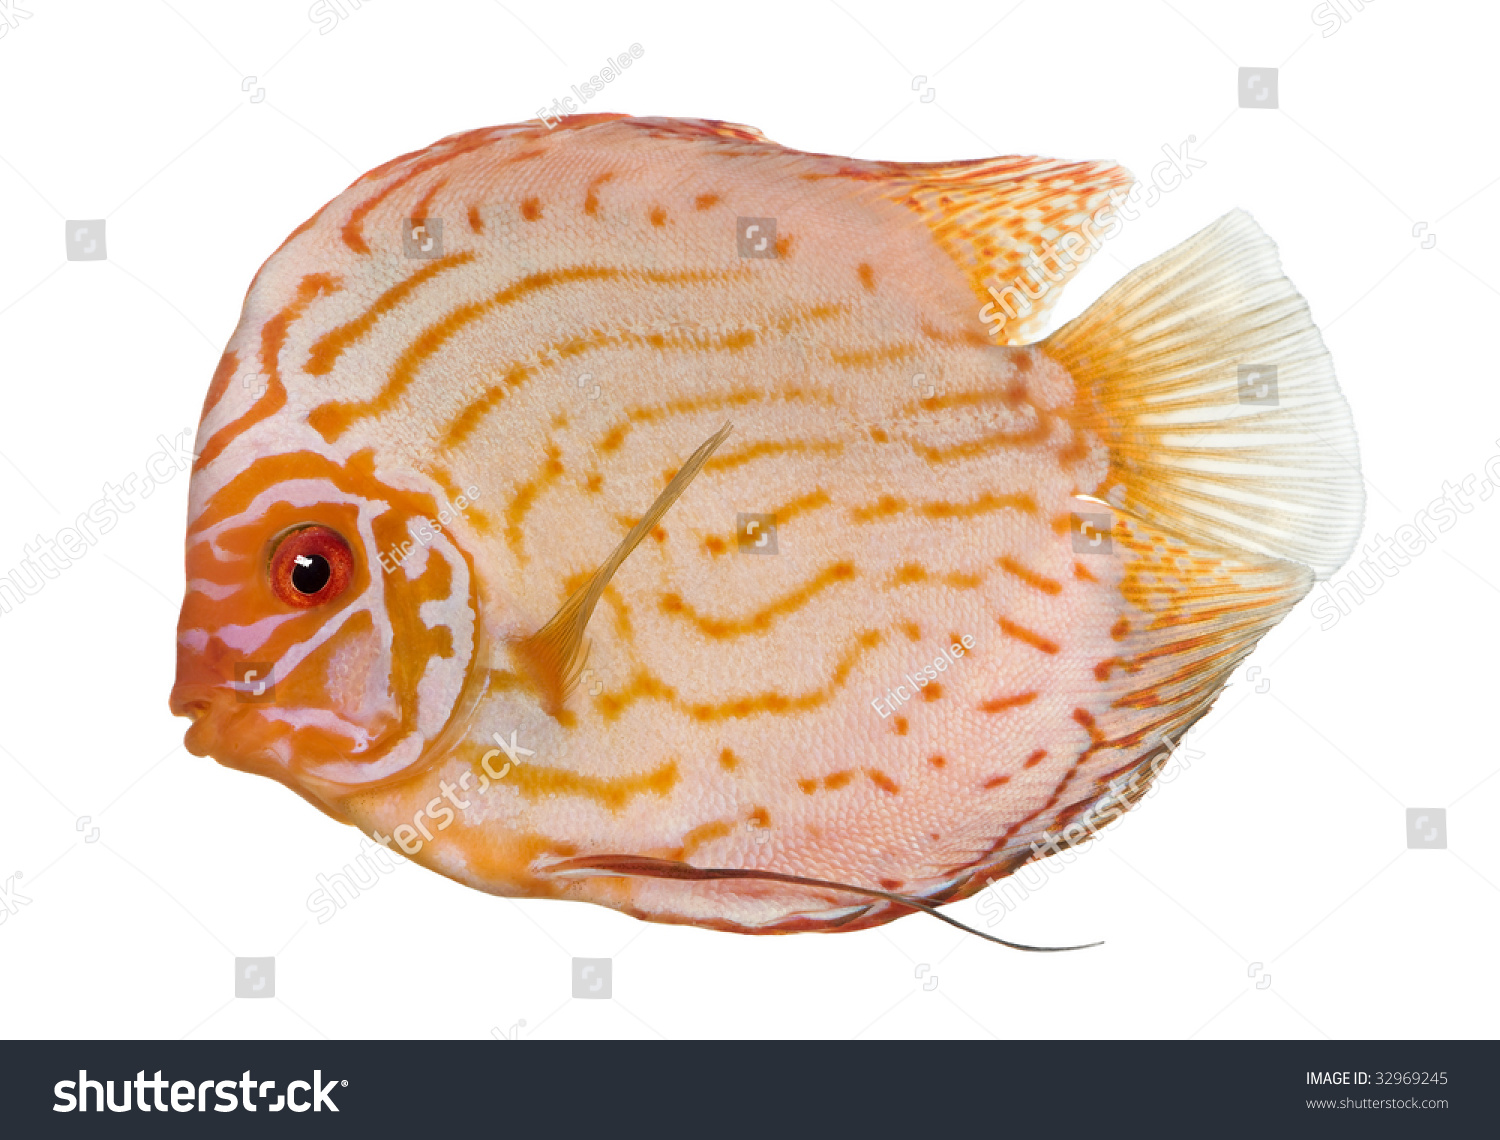 Pigeon Blood Discus Fish Symphysodon Aequifasciatus In Front Of A White Background Stock